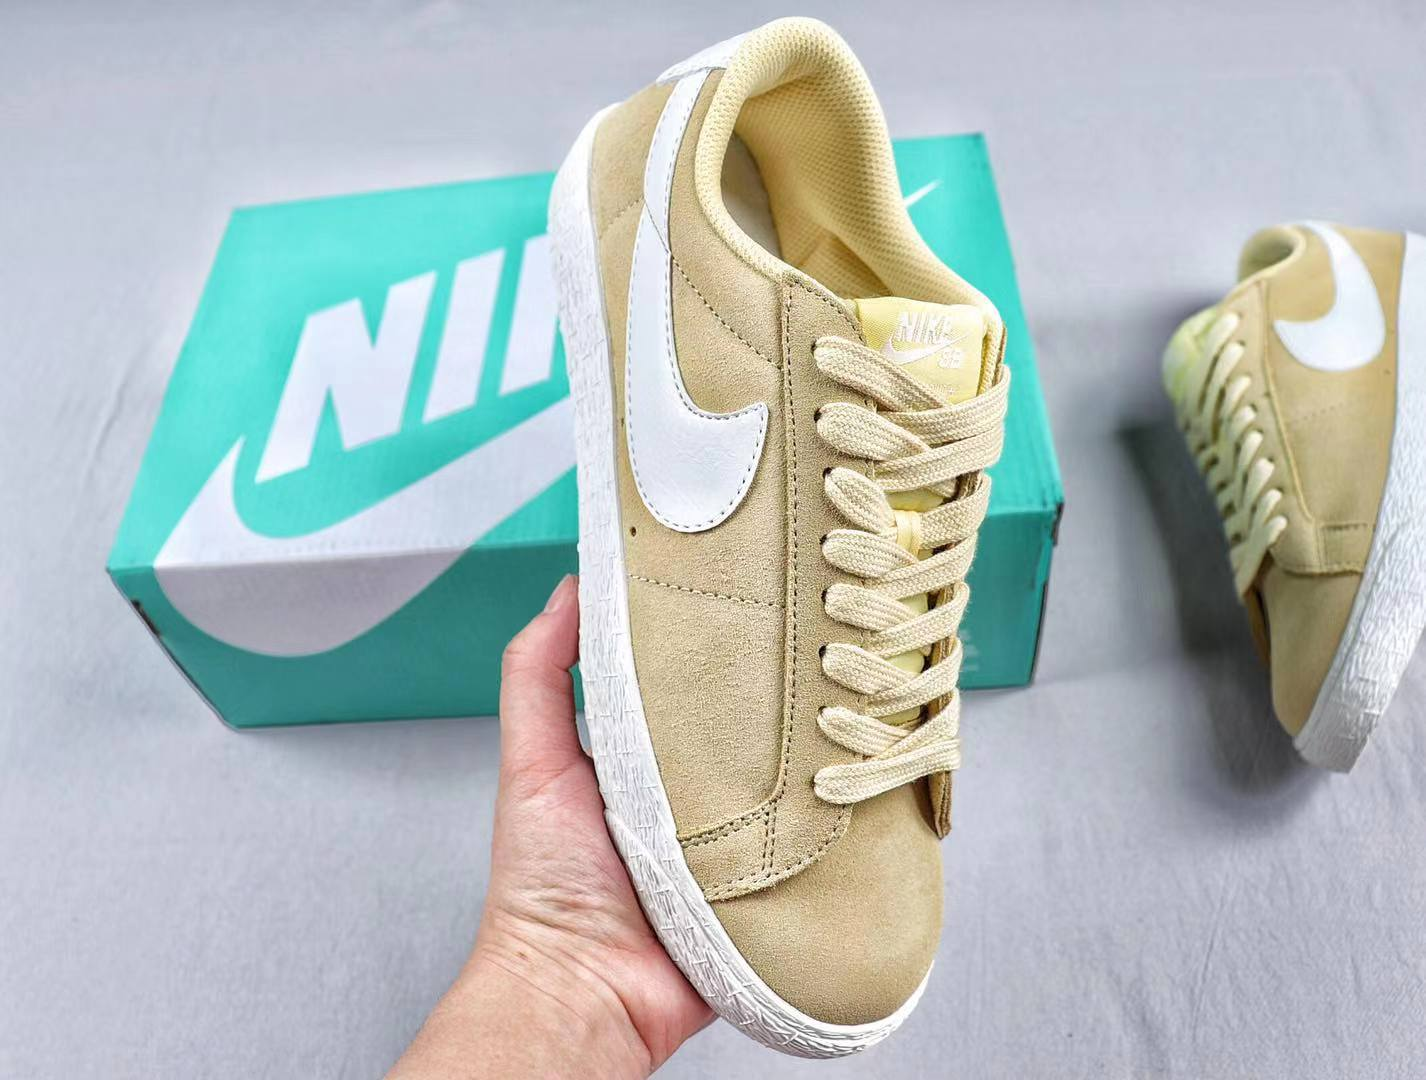 Best Sell Nike Air Blazer Low Suede Elemental Gold White Sneakers 371760-700